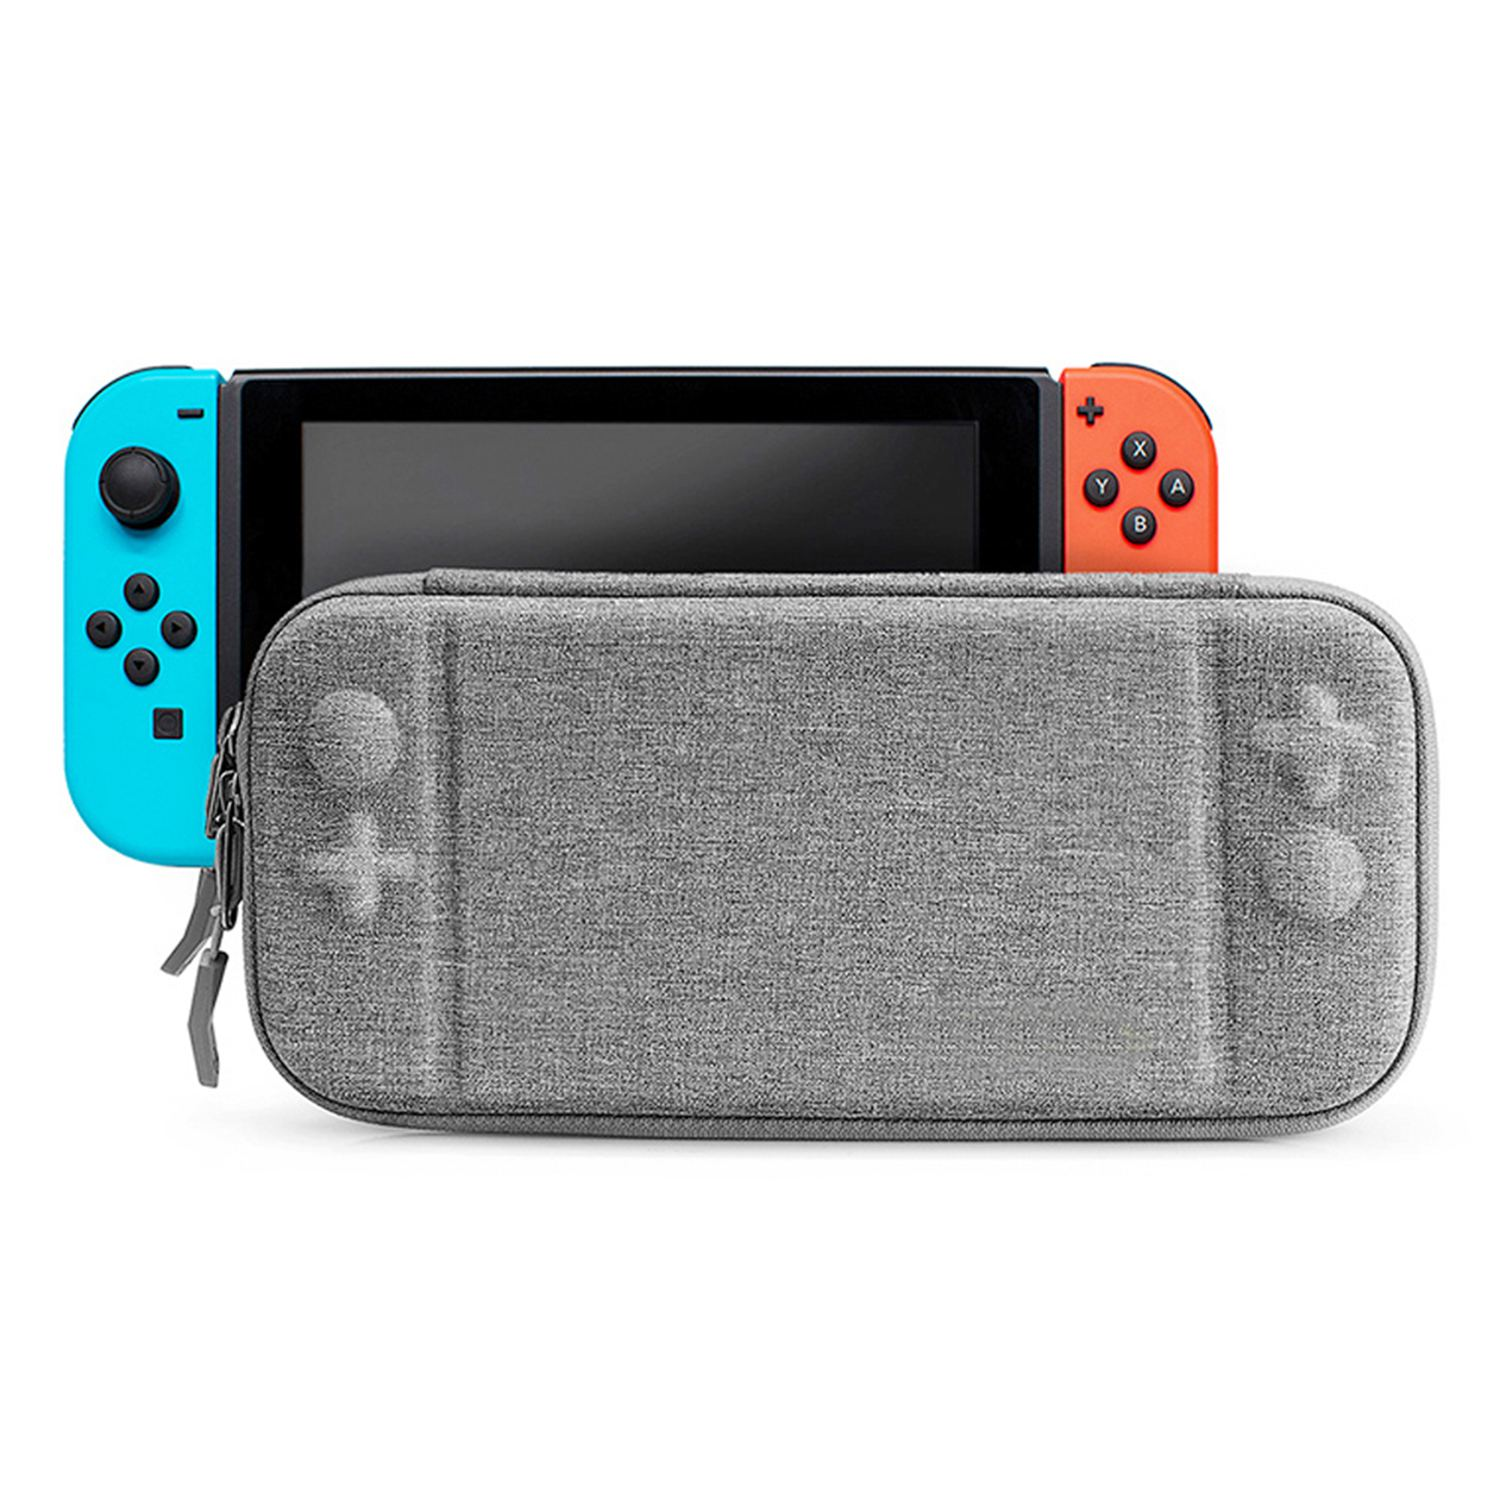 EVA Hard Bag Storage Travel Carry Pouch Case for Nintendo Switch for NS Nintend Switch Protectiv